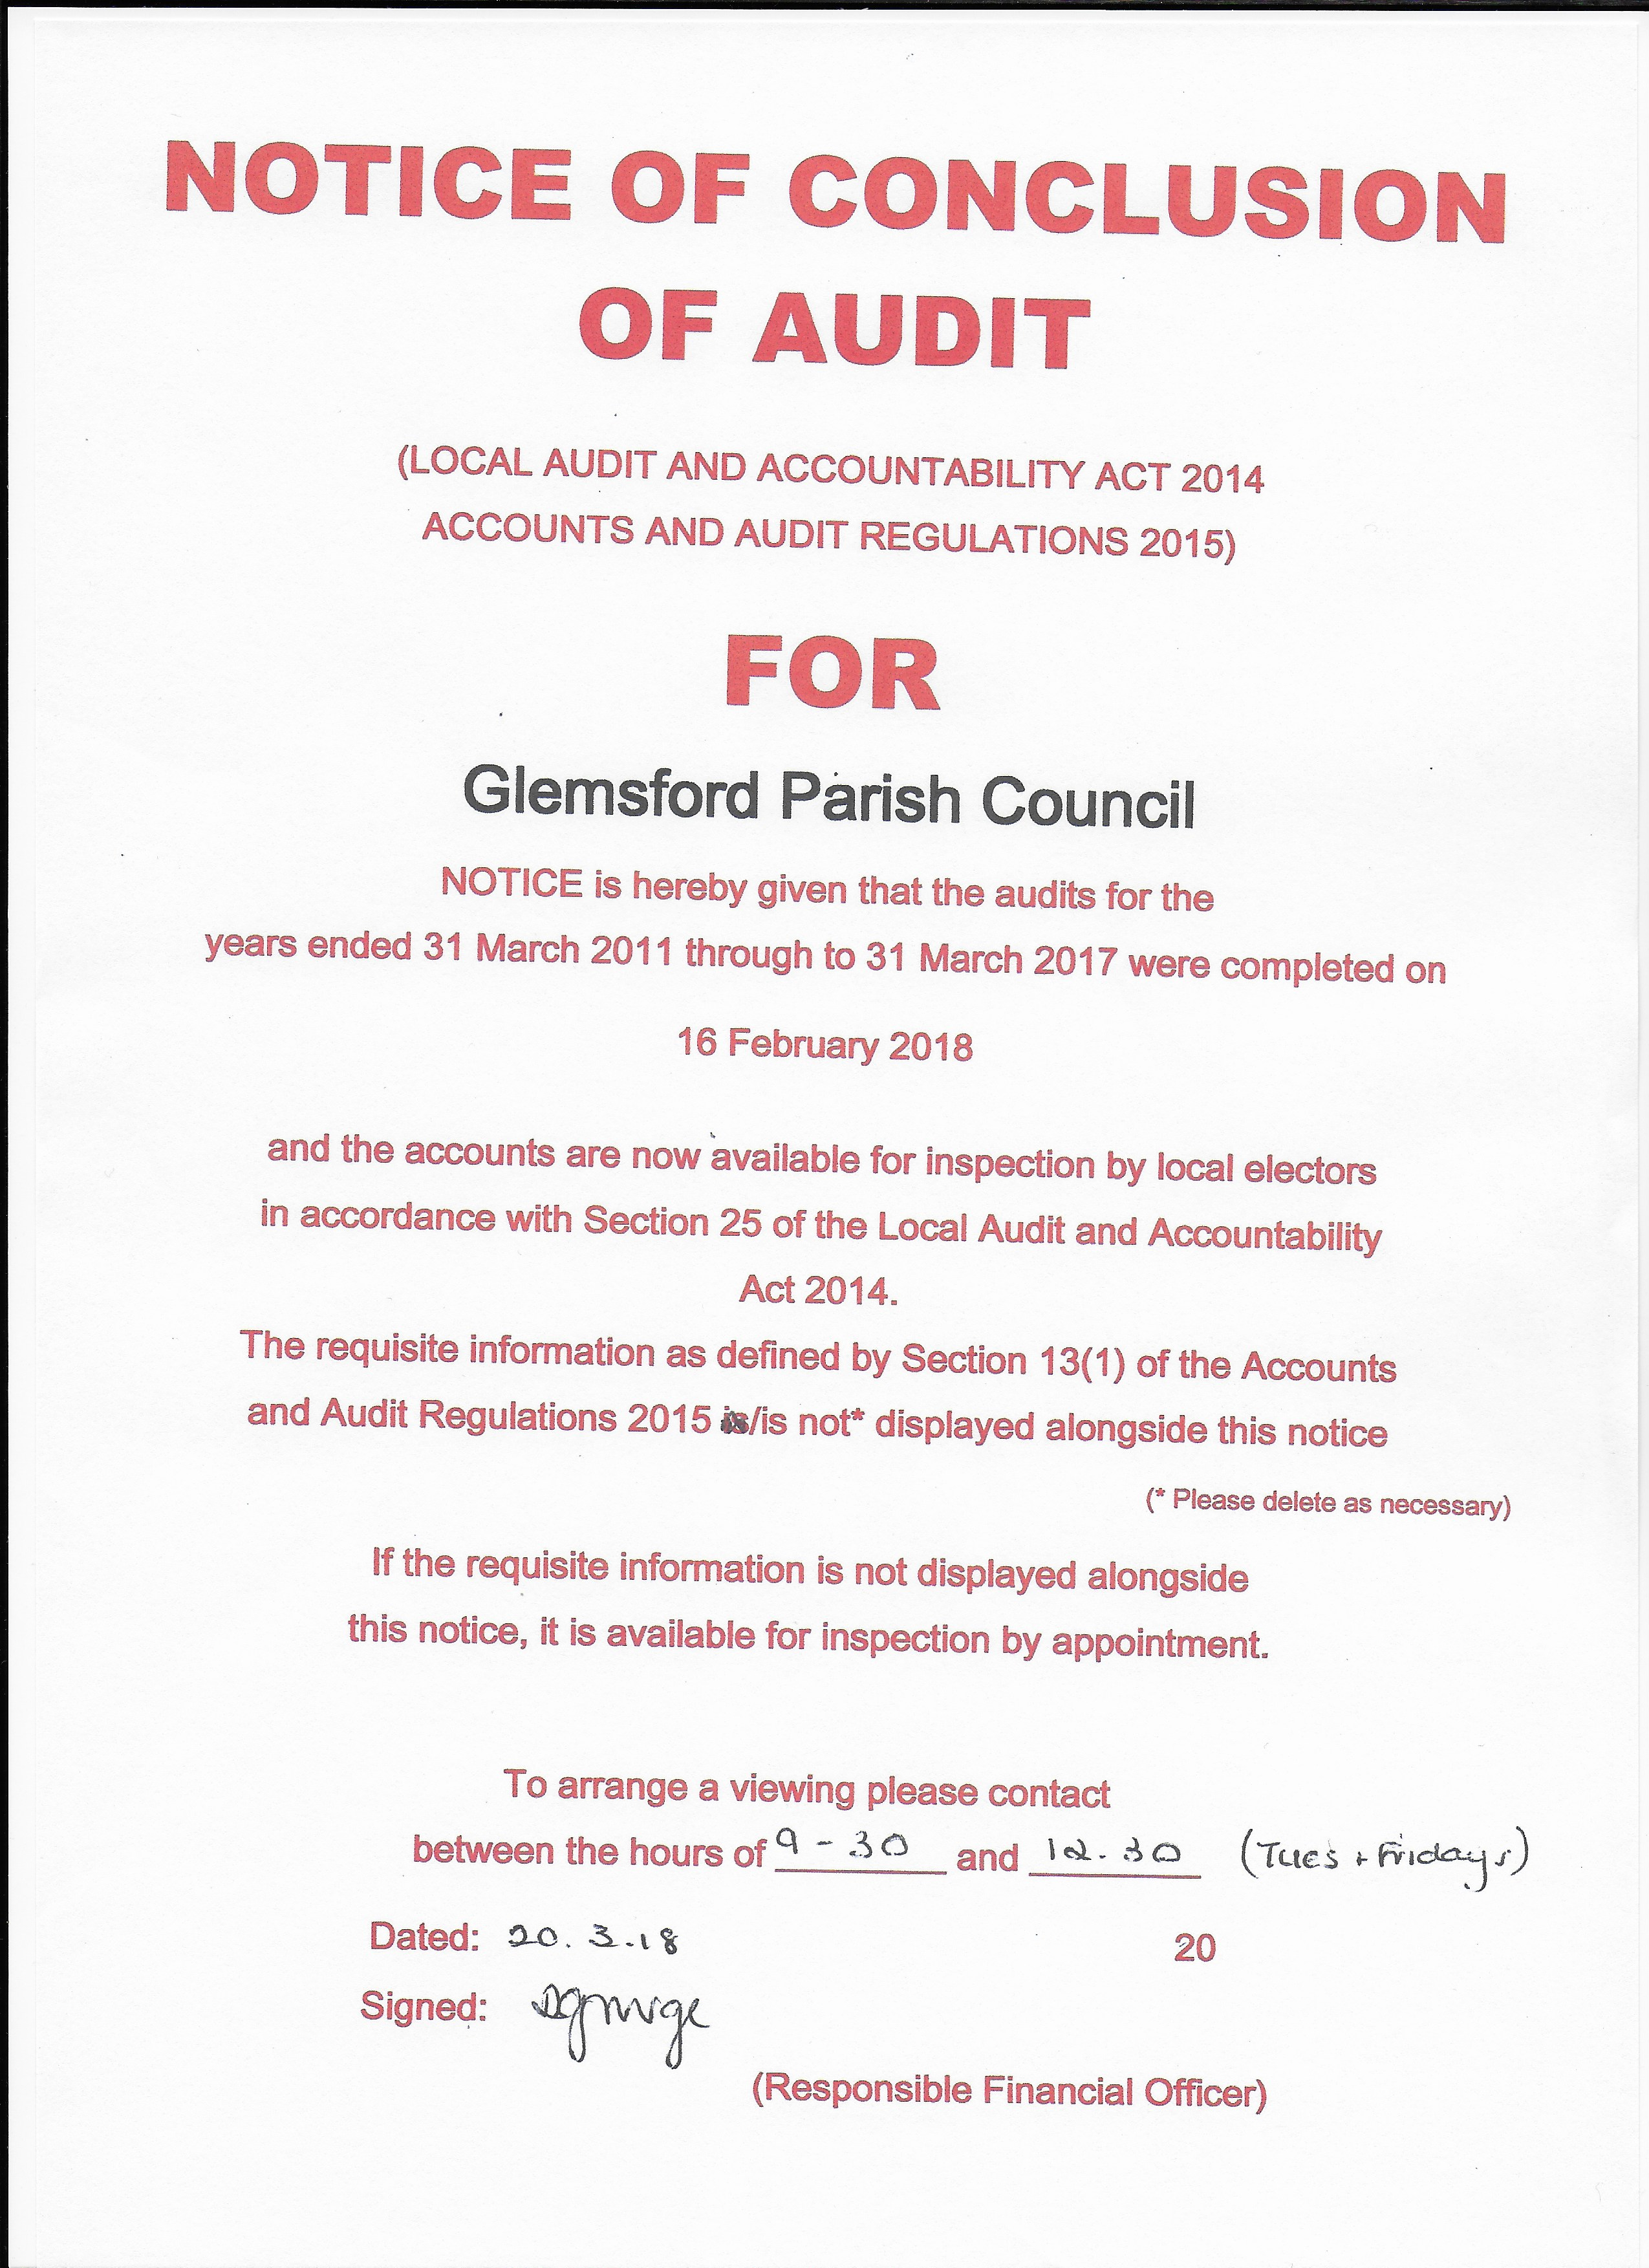 Notice of Conclusion of Audit for Glemsford Parish Council